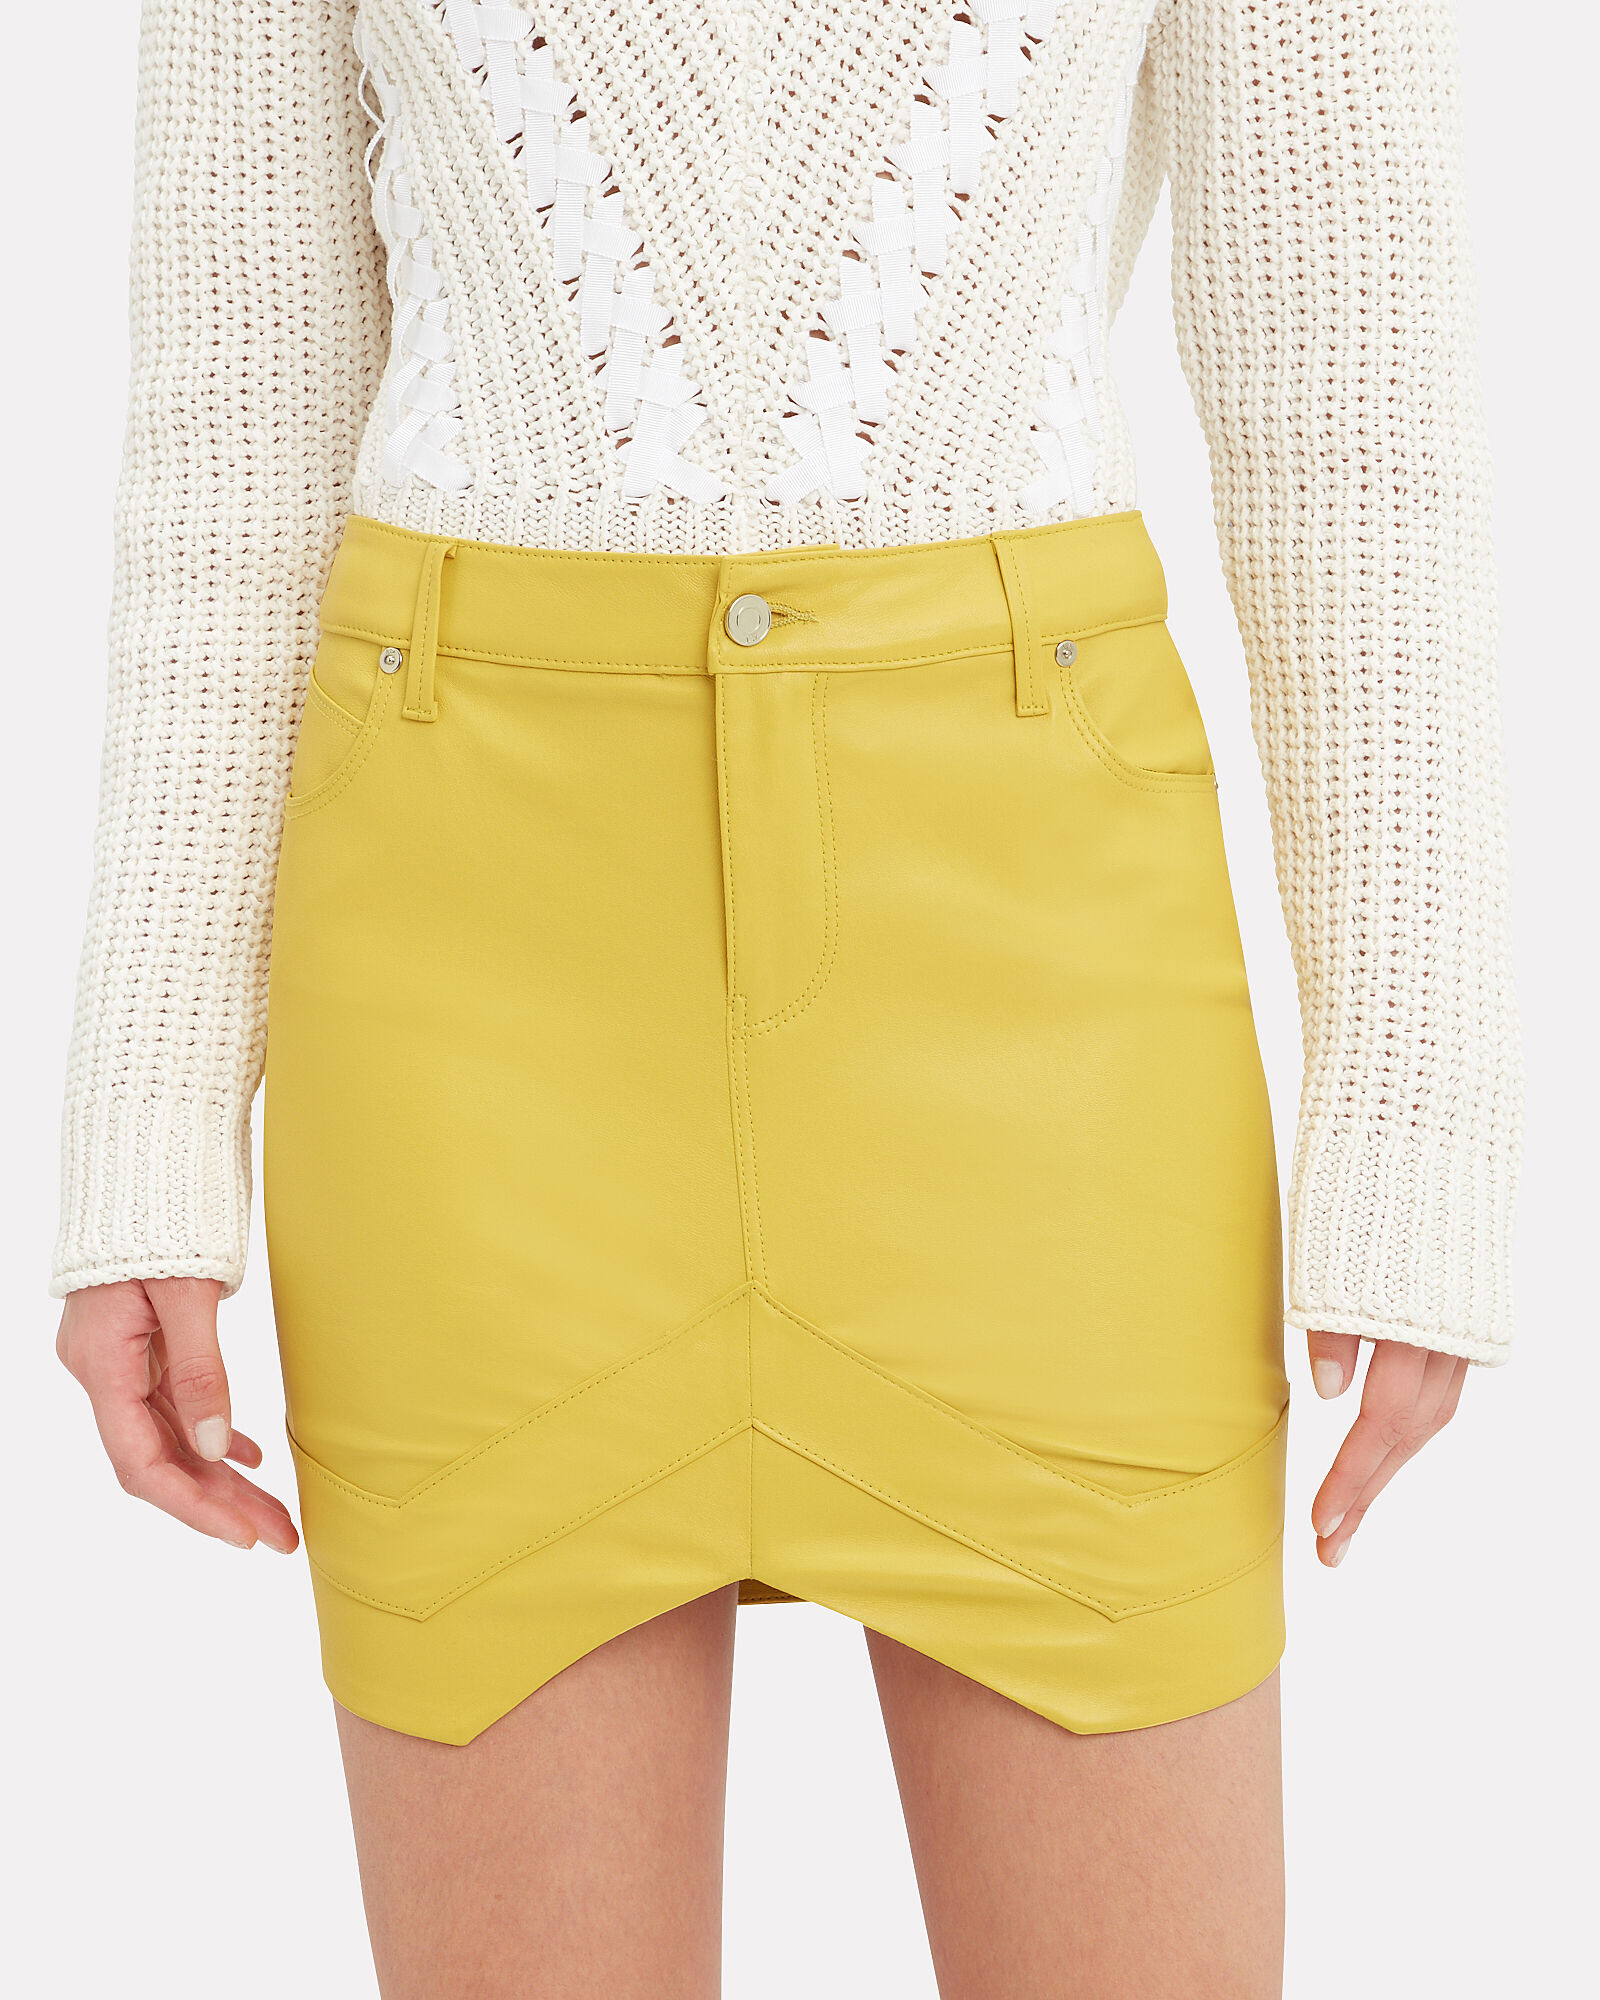 Tempest Leather Mini Skirt, YELLOW, hi-res